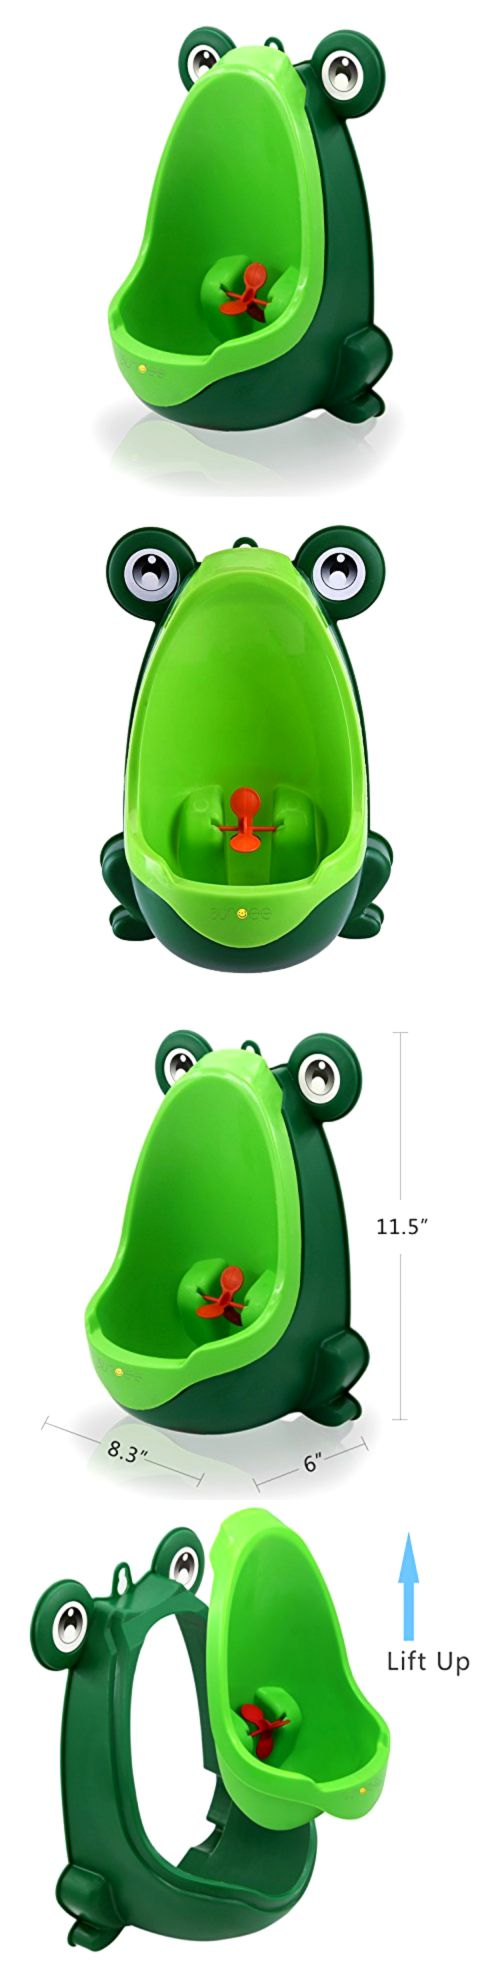 Potty Training 37631: Kids Potty Training Urinal Toddler Standing Pee Trainer With Aiming Target Green -> BUY IT NOW ONLY: $34.32 on eBay!